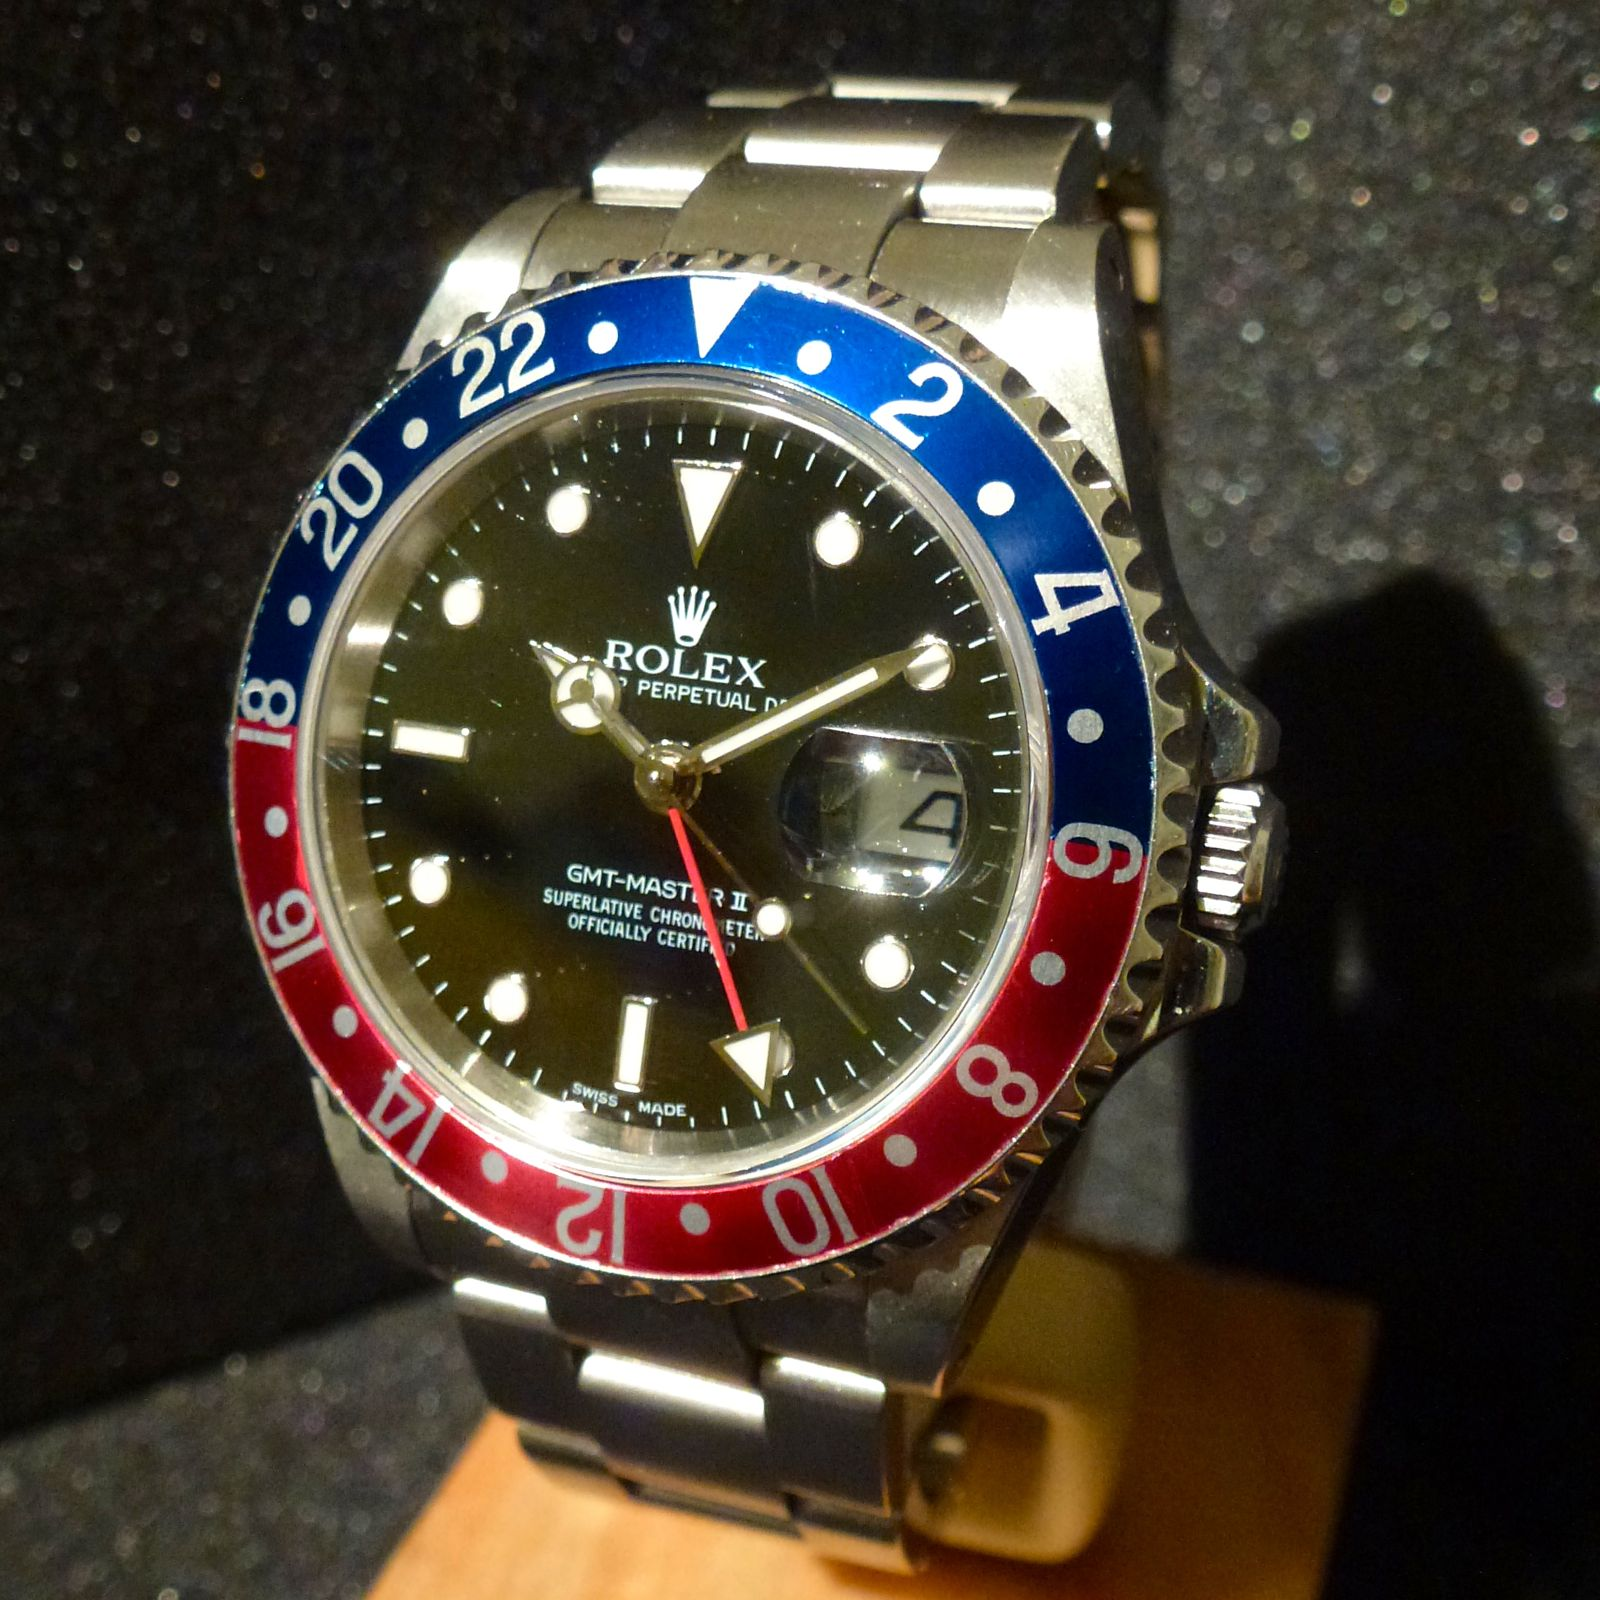 how to set a gmt master for utc